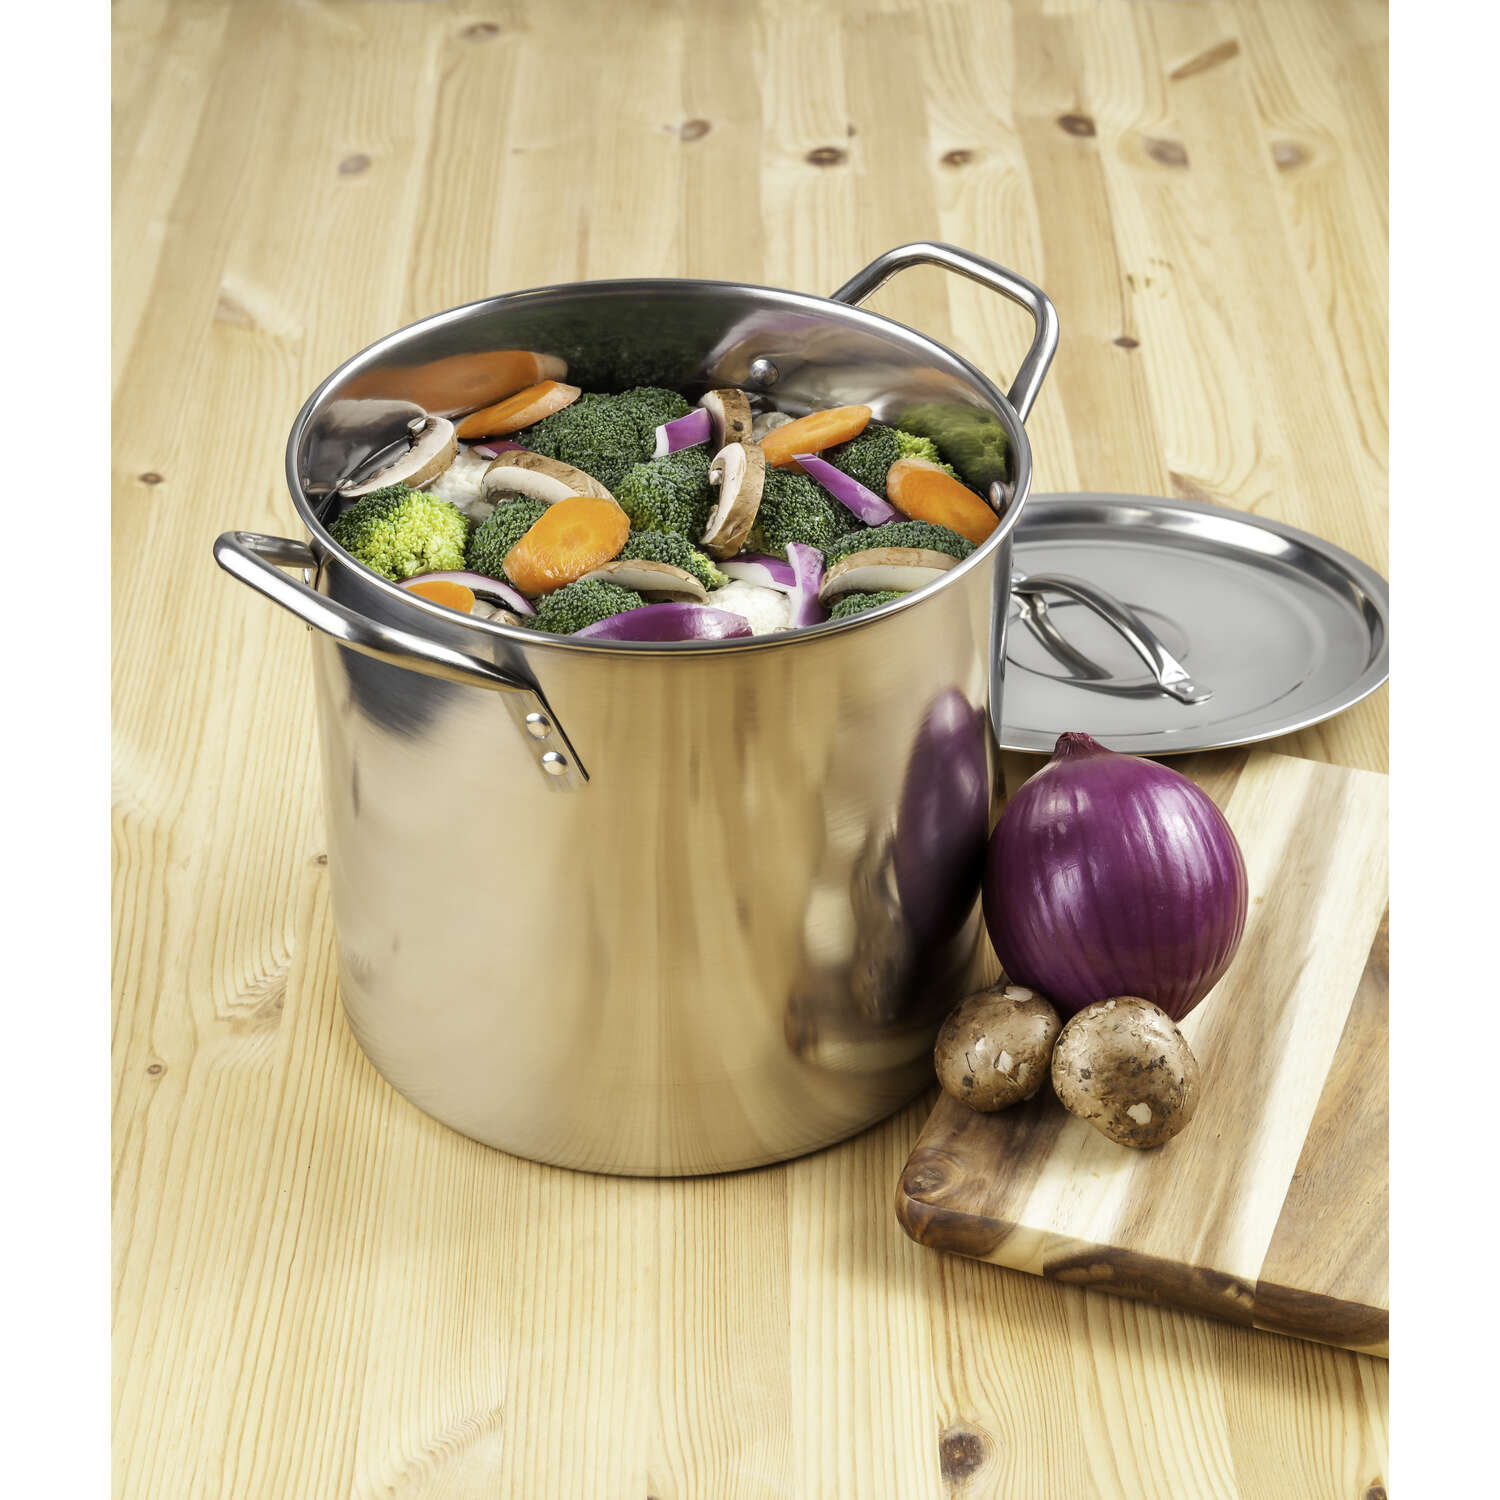 McSunley  Stainless Steel  Stock Pot  10 in. 12 qt. Silver